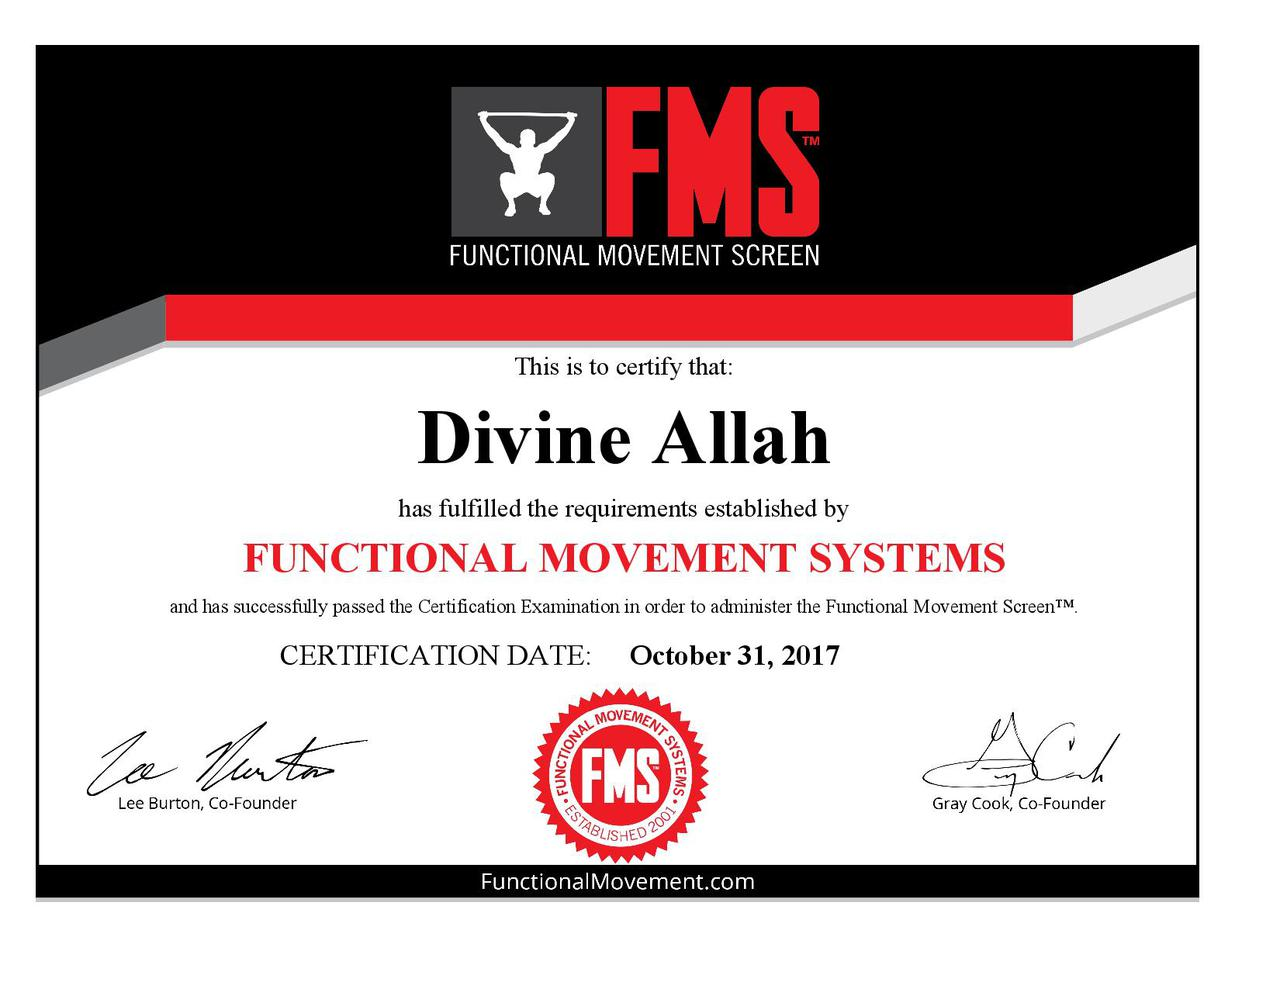 Functional movement systems certification